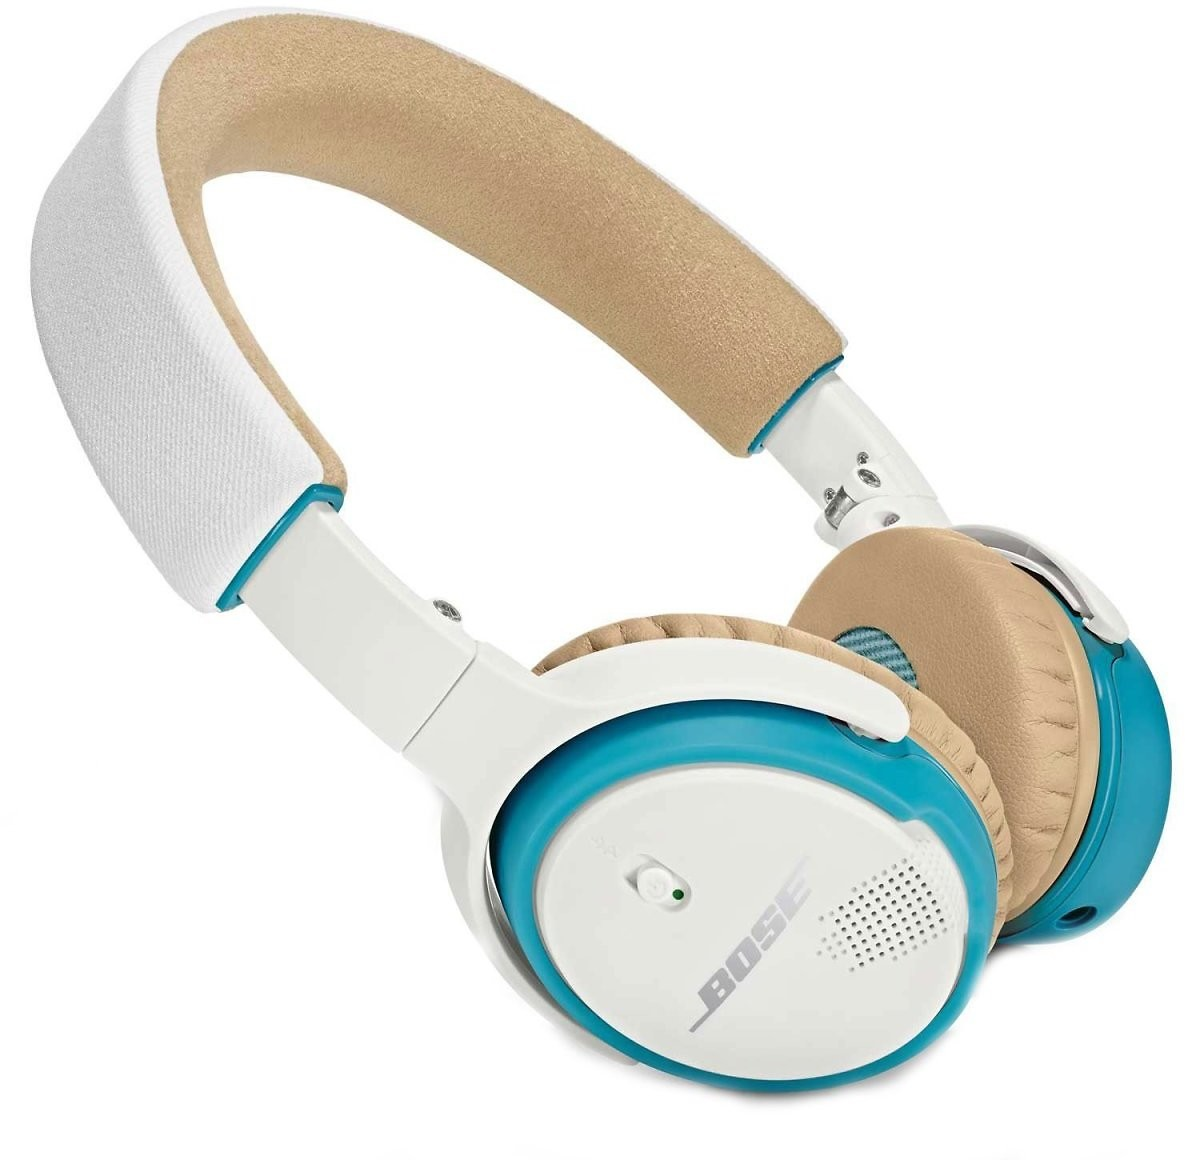 SoundLink On-ear Bluetooth Headphones (White) $124.95